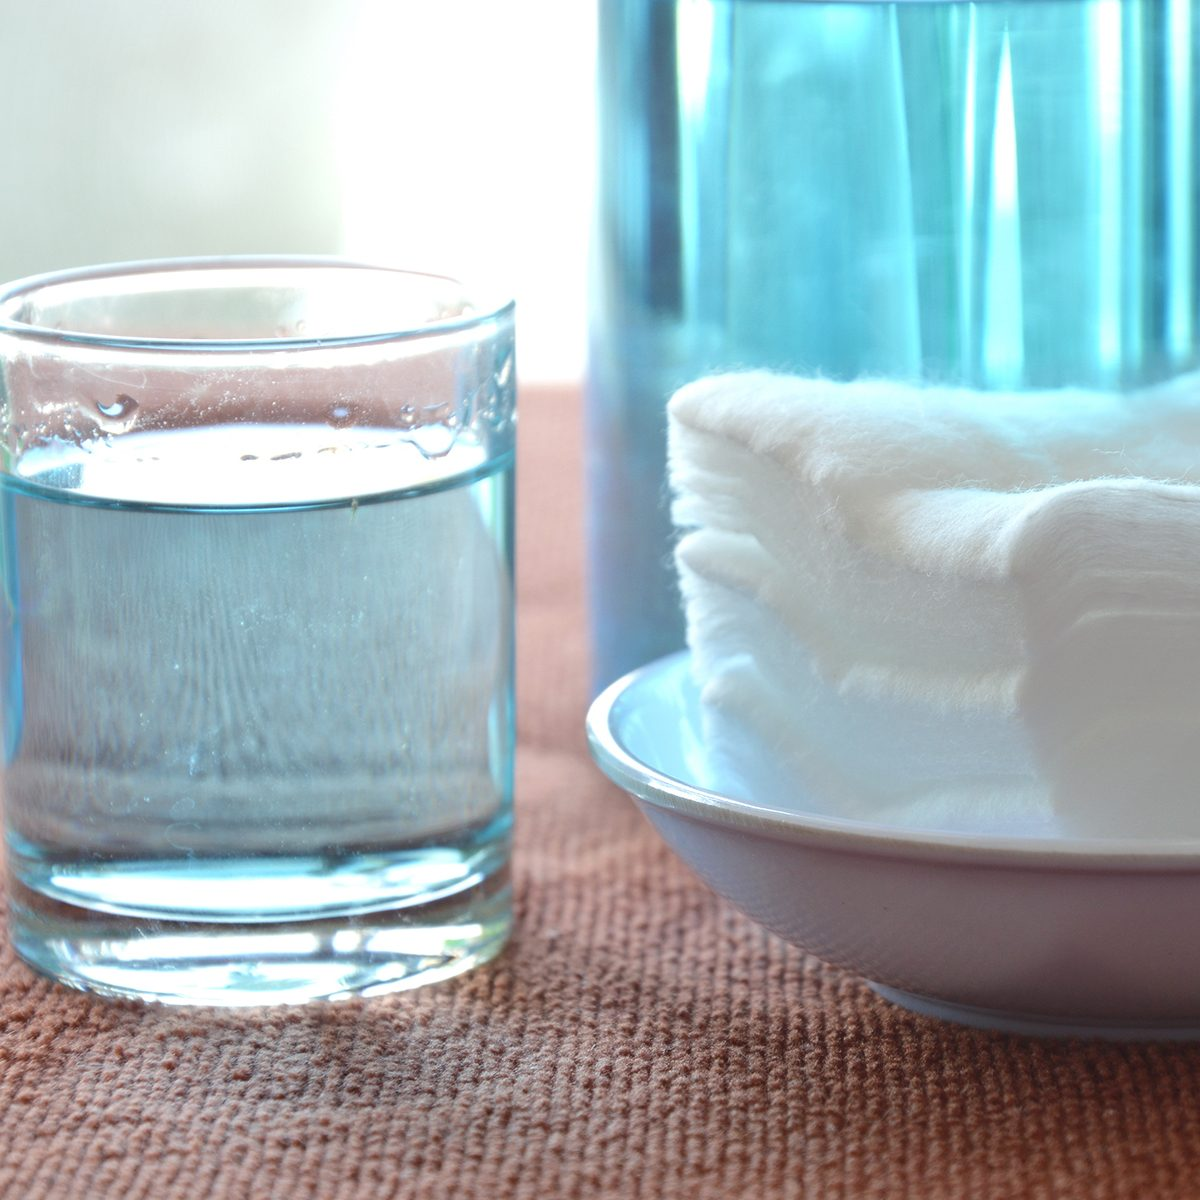 blue alcohol for wash wound in glass and clean white cotton